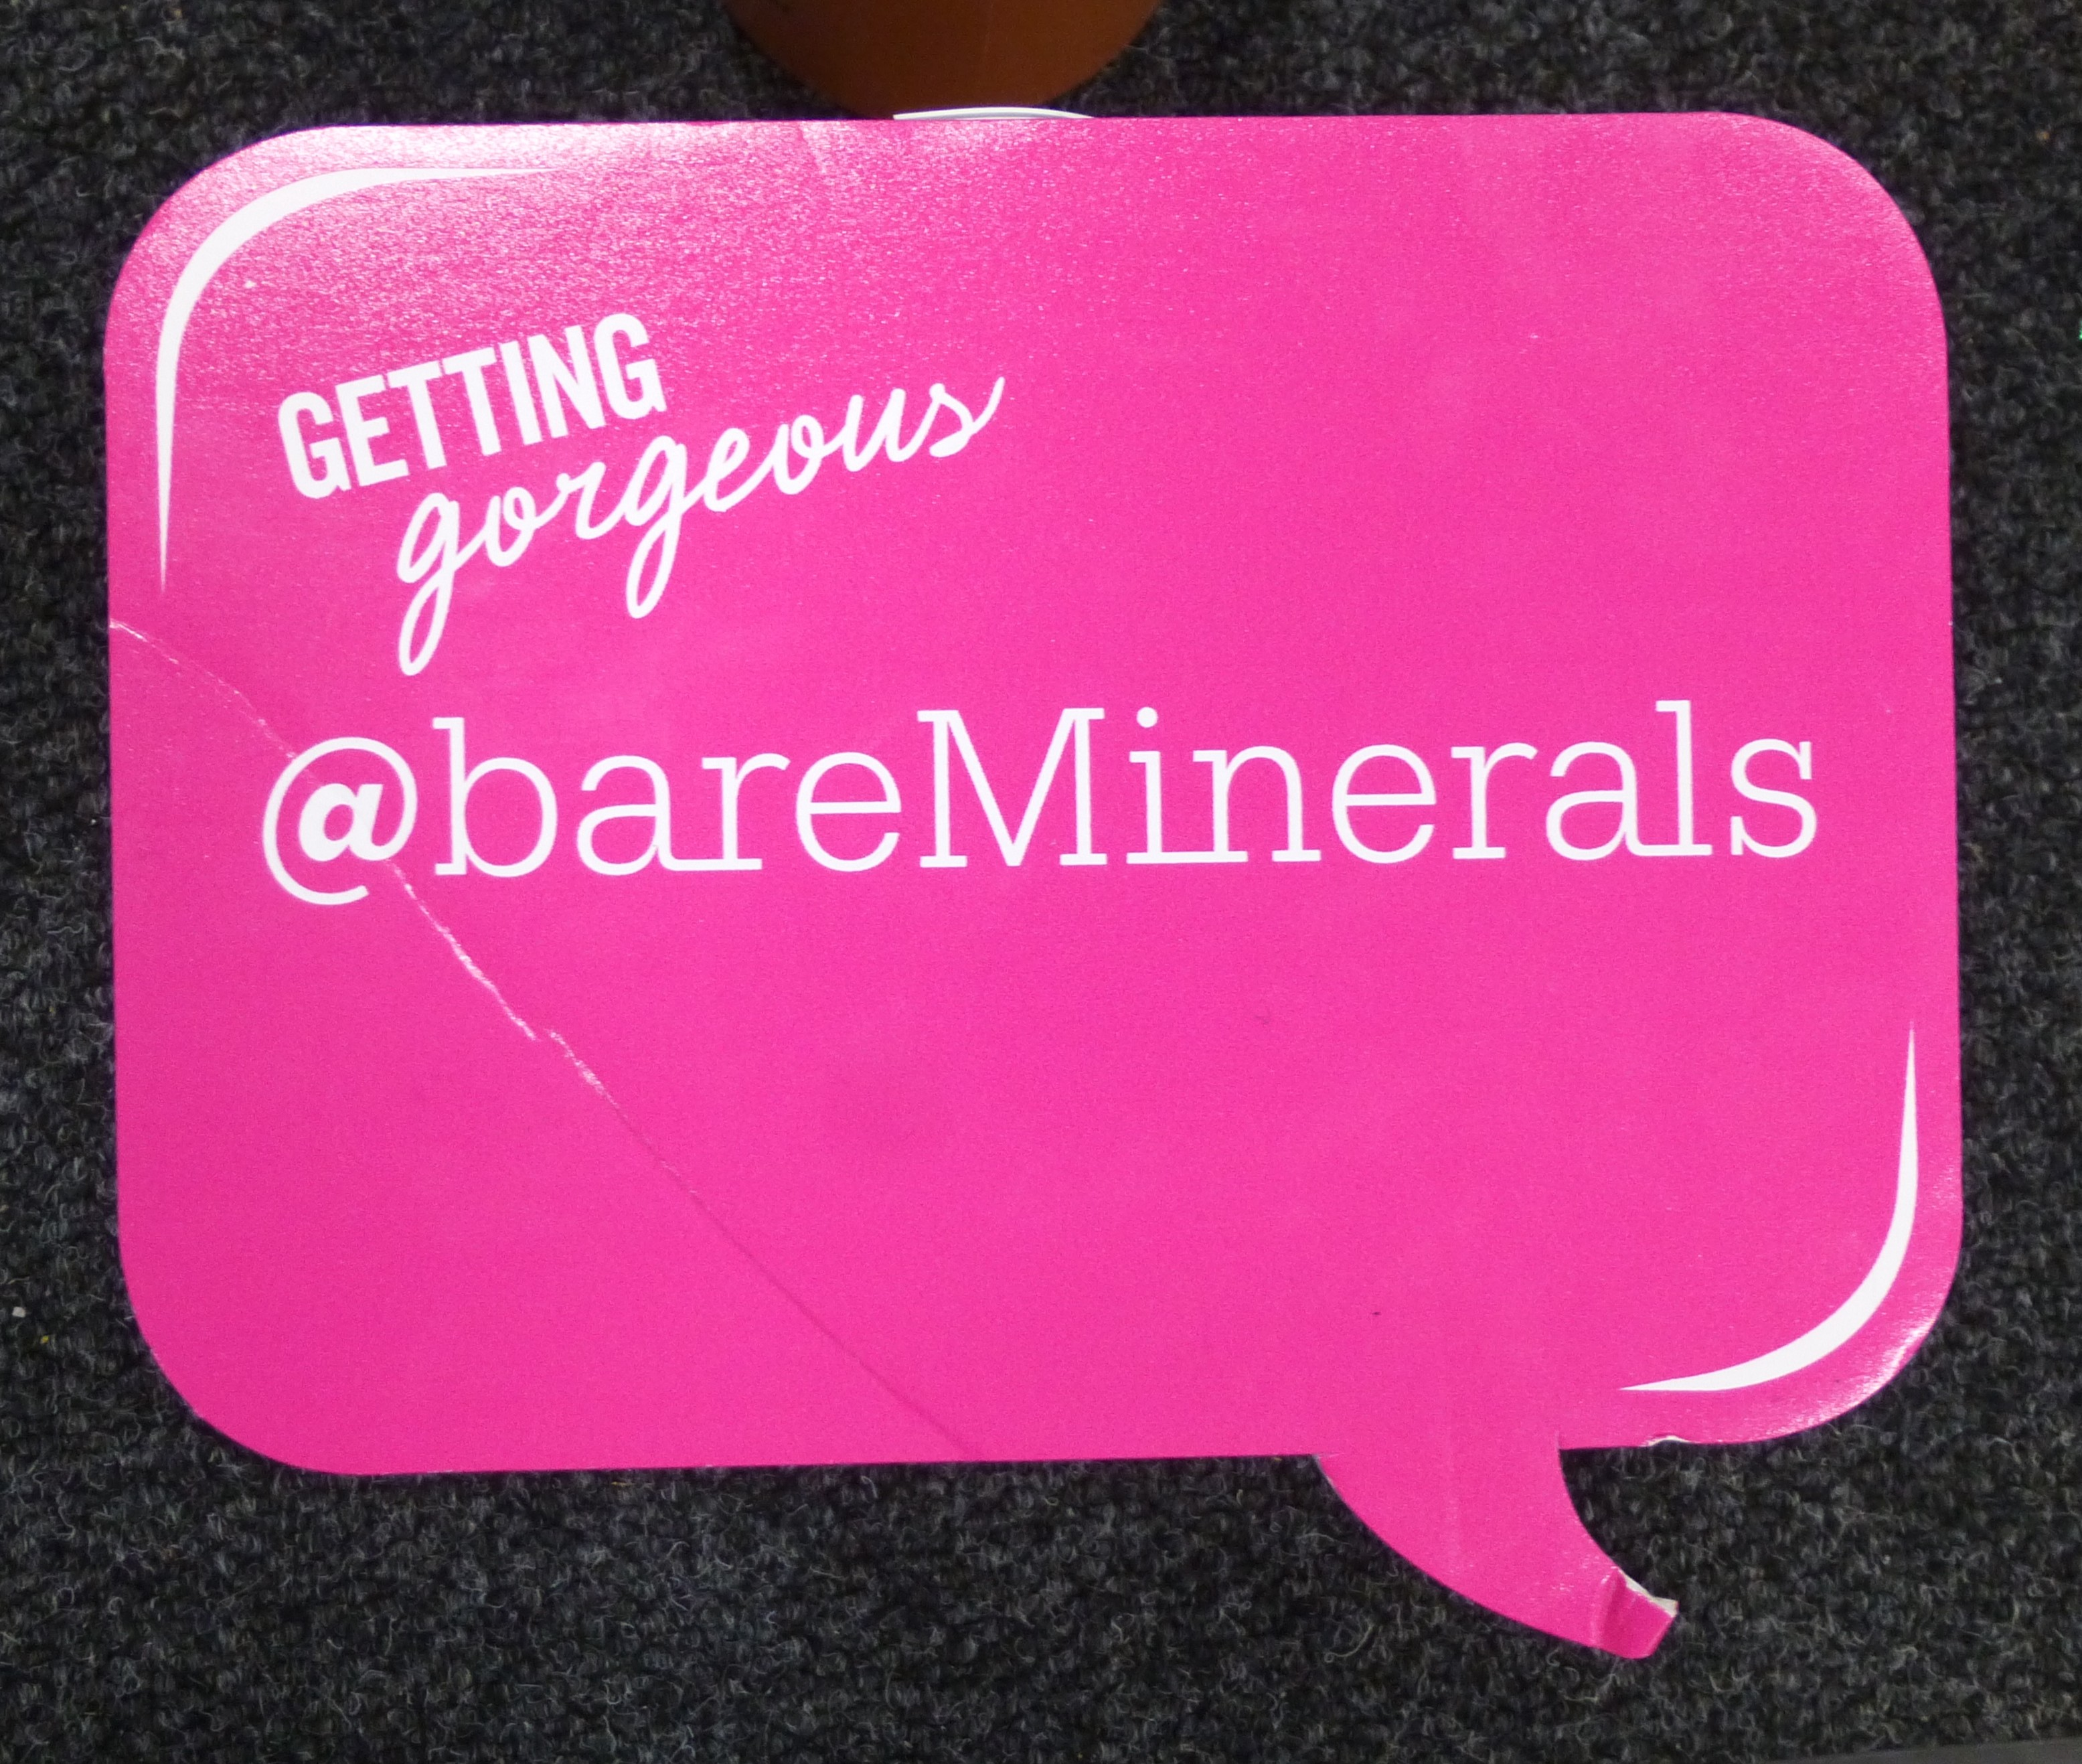 May 2014 the worley gig bare minerals on twitter biocorpaavc Images